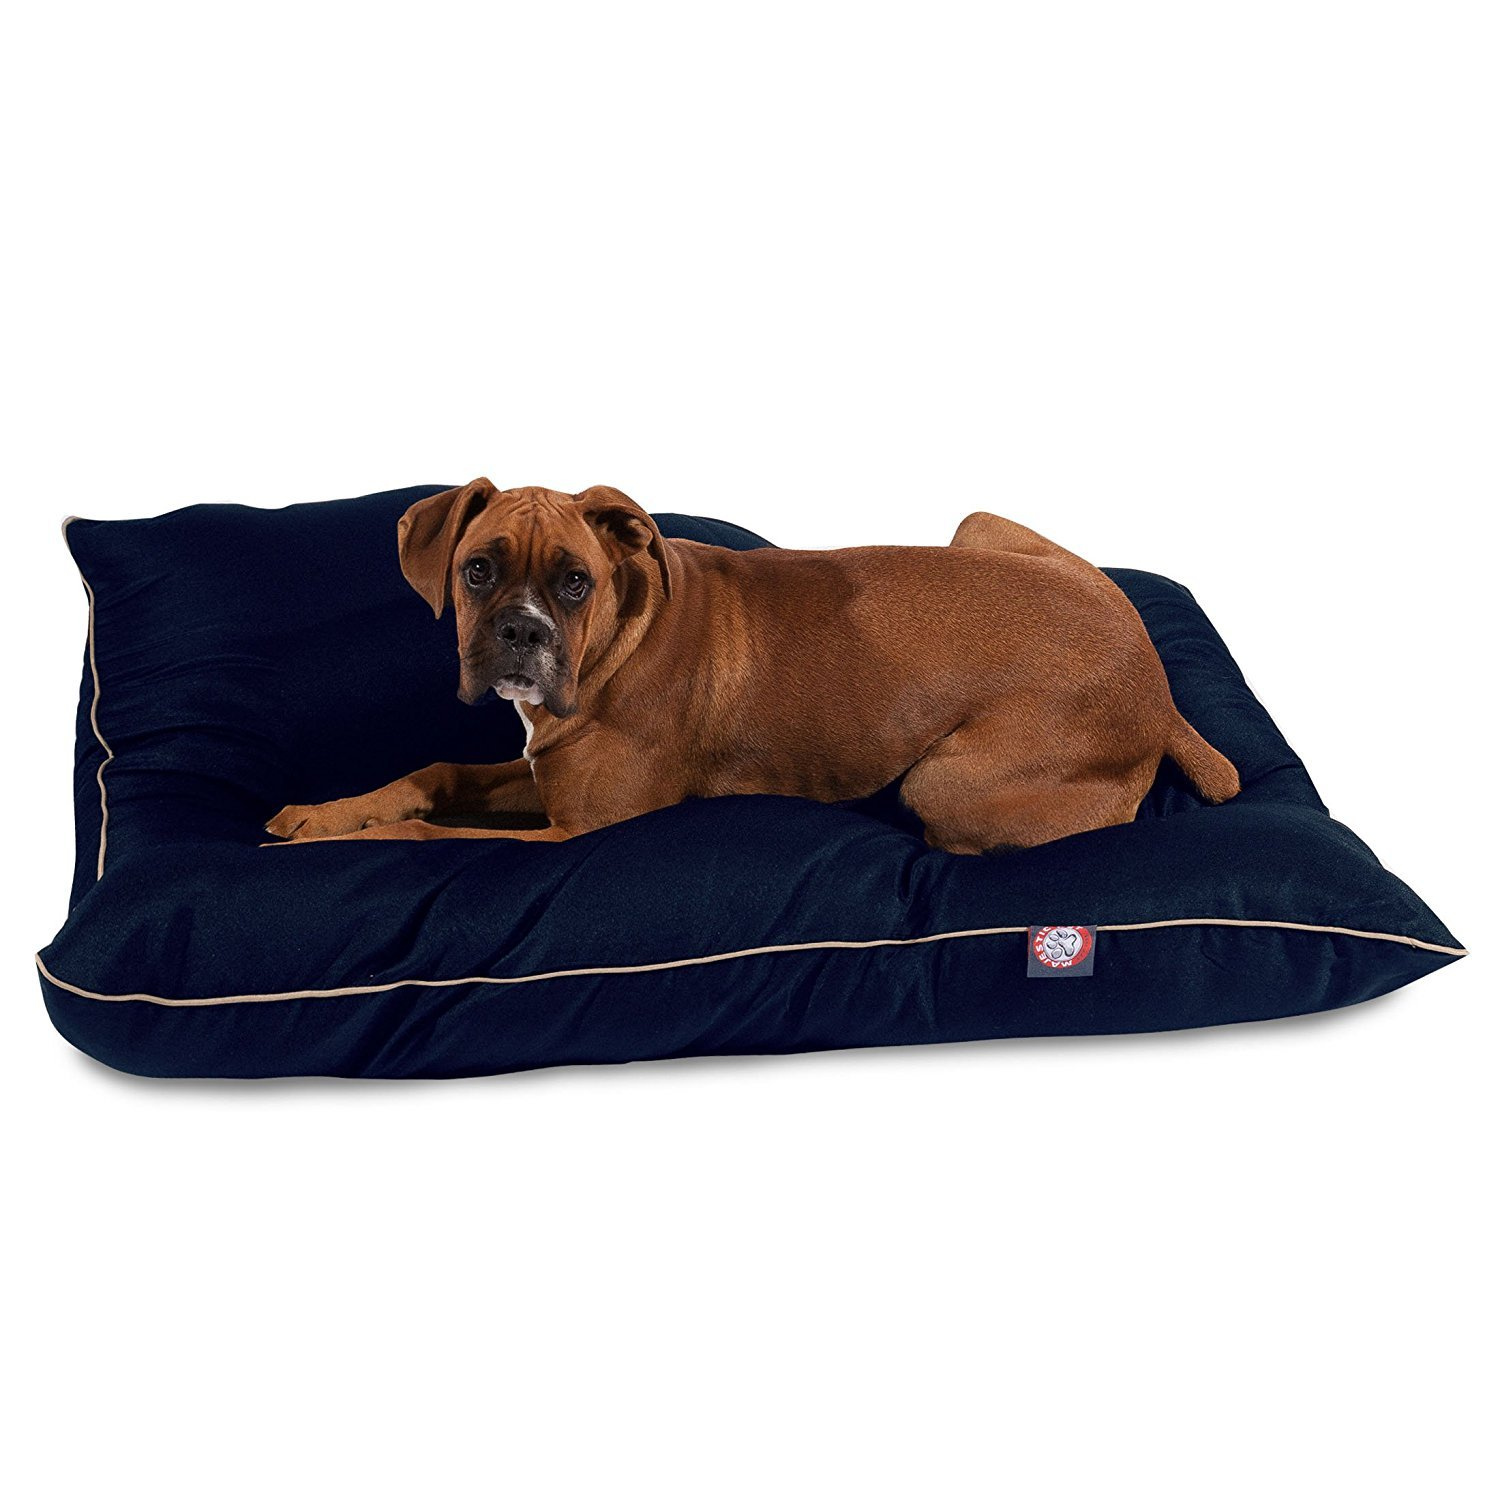 35x46 bluee Super Value Pet Dog Bed by Majestic Pet Products Large